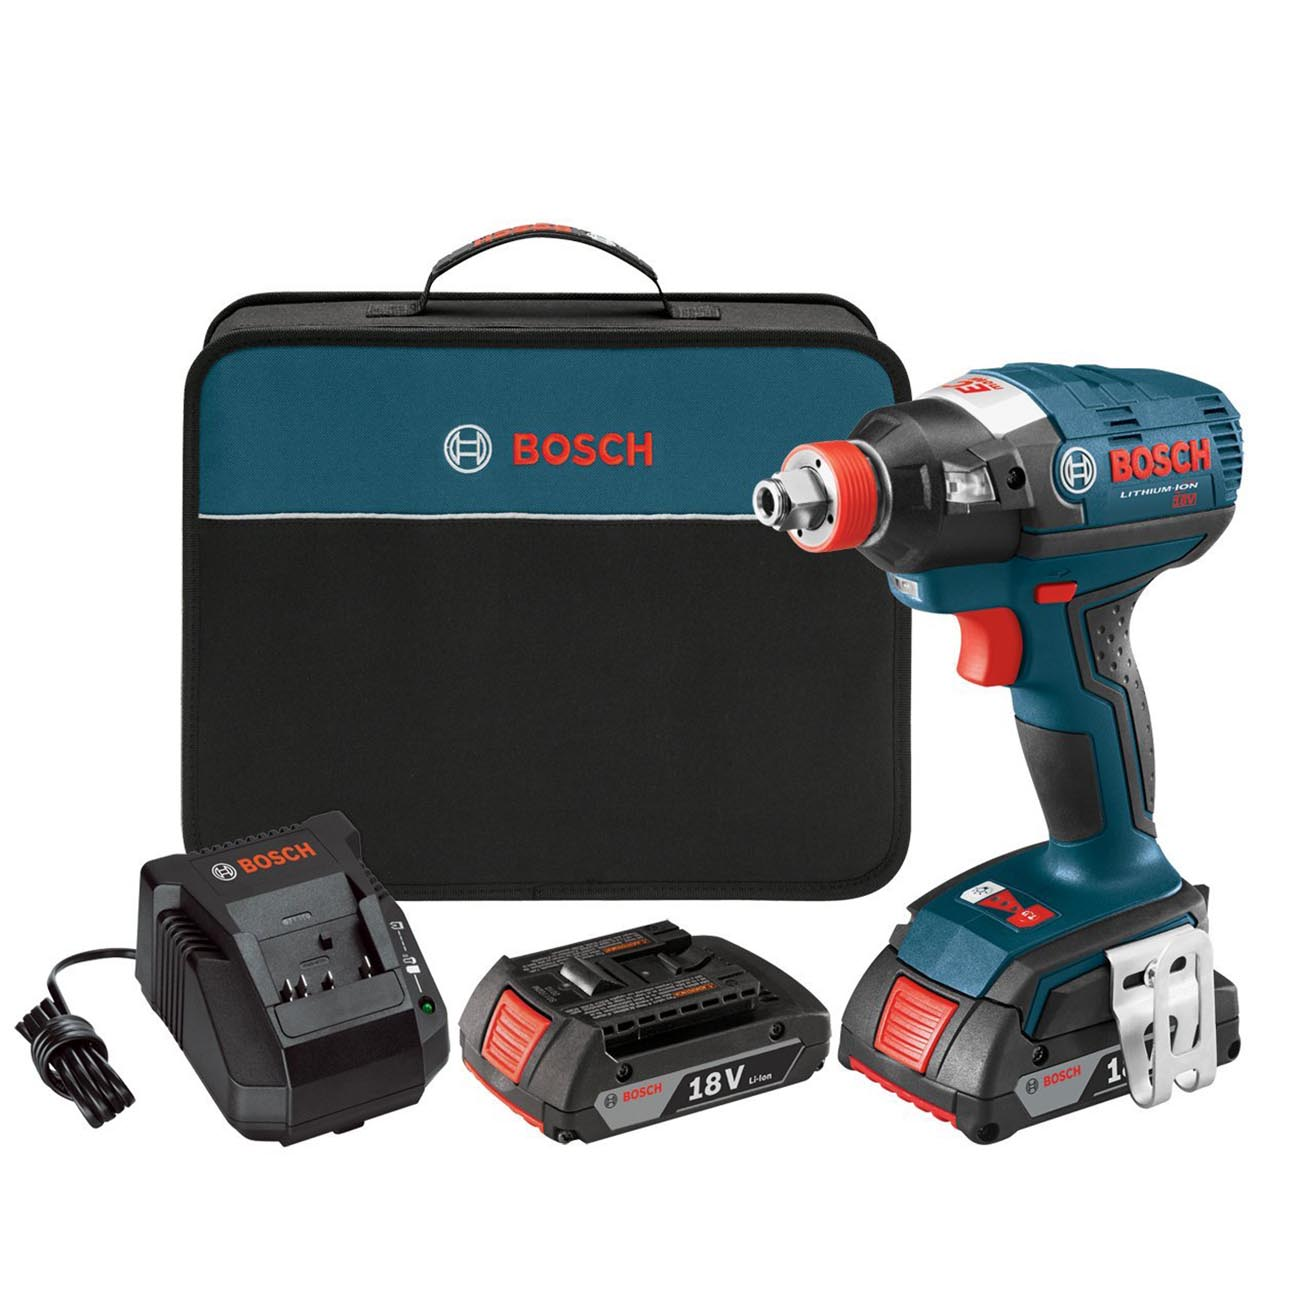 bosch 18v impact driver batteries charger. Black Bedroom Furniture Sets. Home Design Ideas